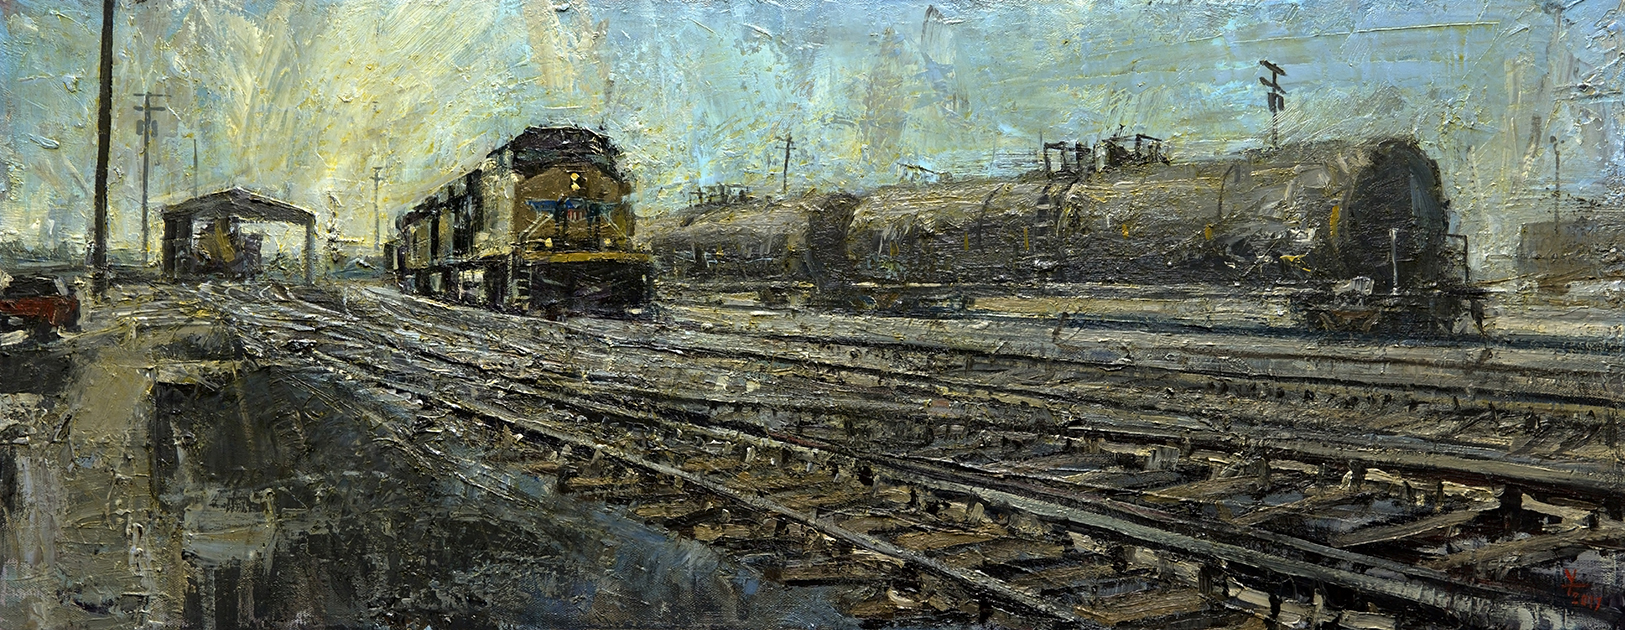 Union Pacific 030 by  Donald Yatomi - Masterpiece Online